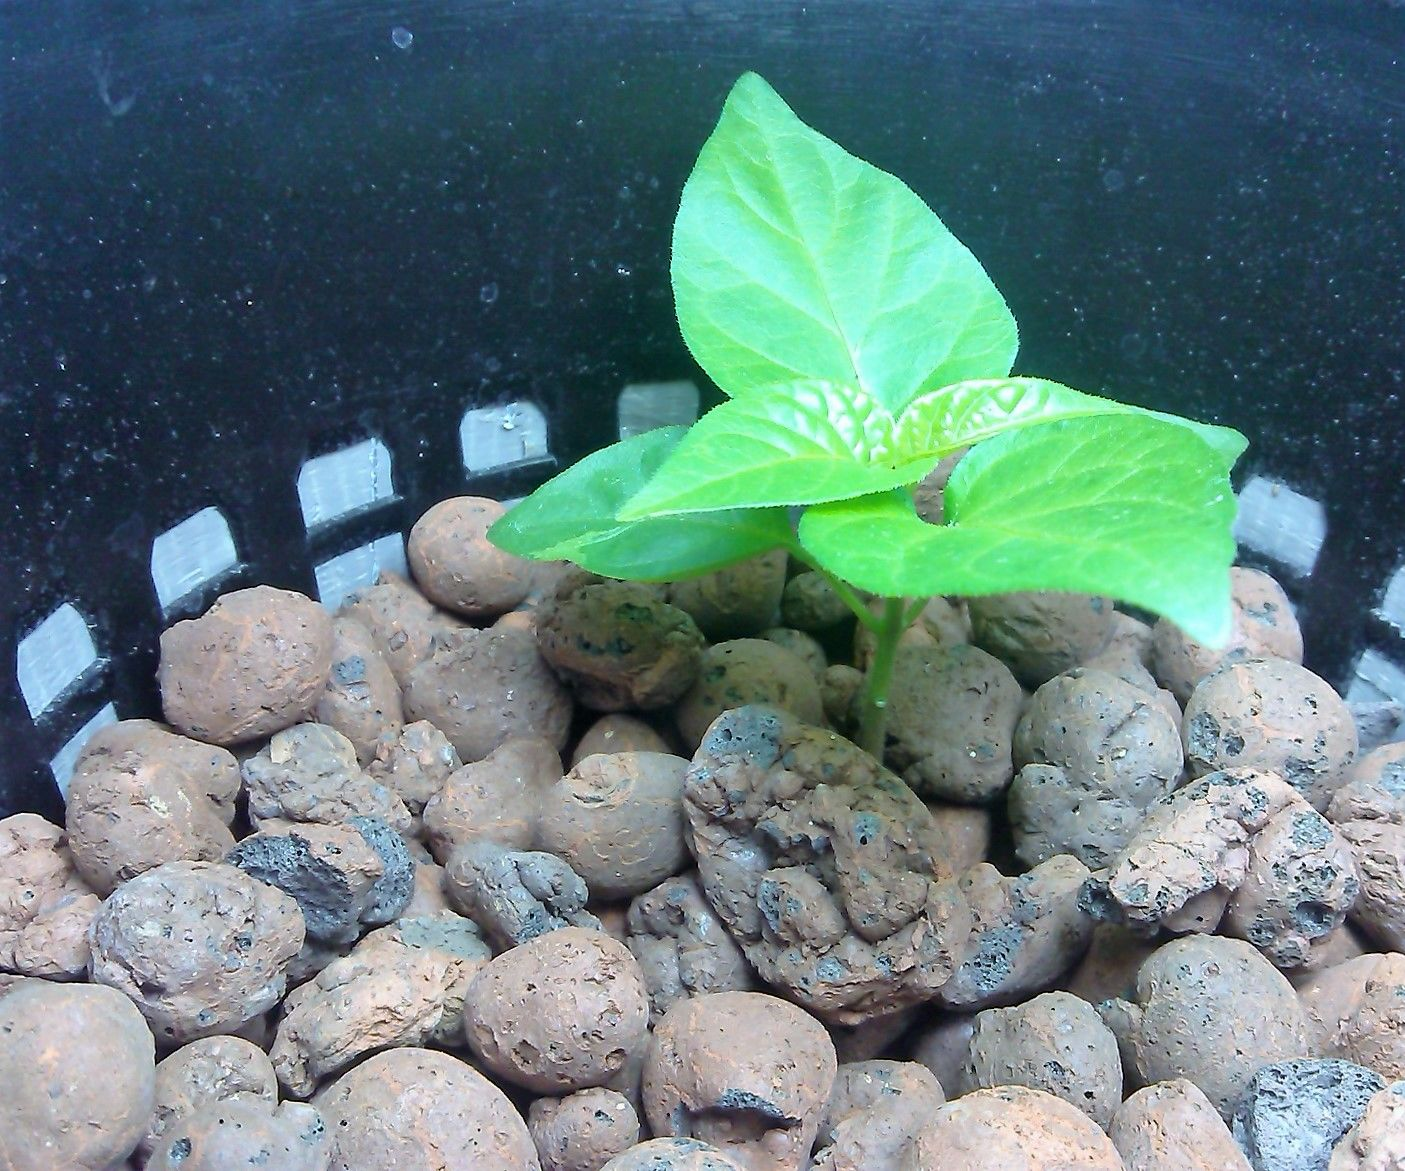 How to Make a DWC (Bubbler Hydroponics) for Bhut Jolokia Plant (Ghost Pepper)